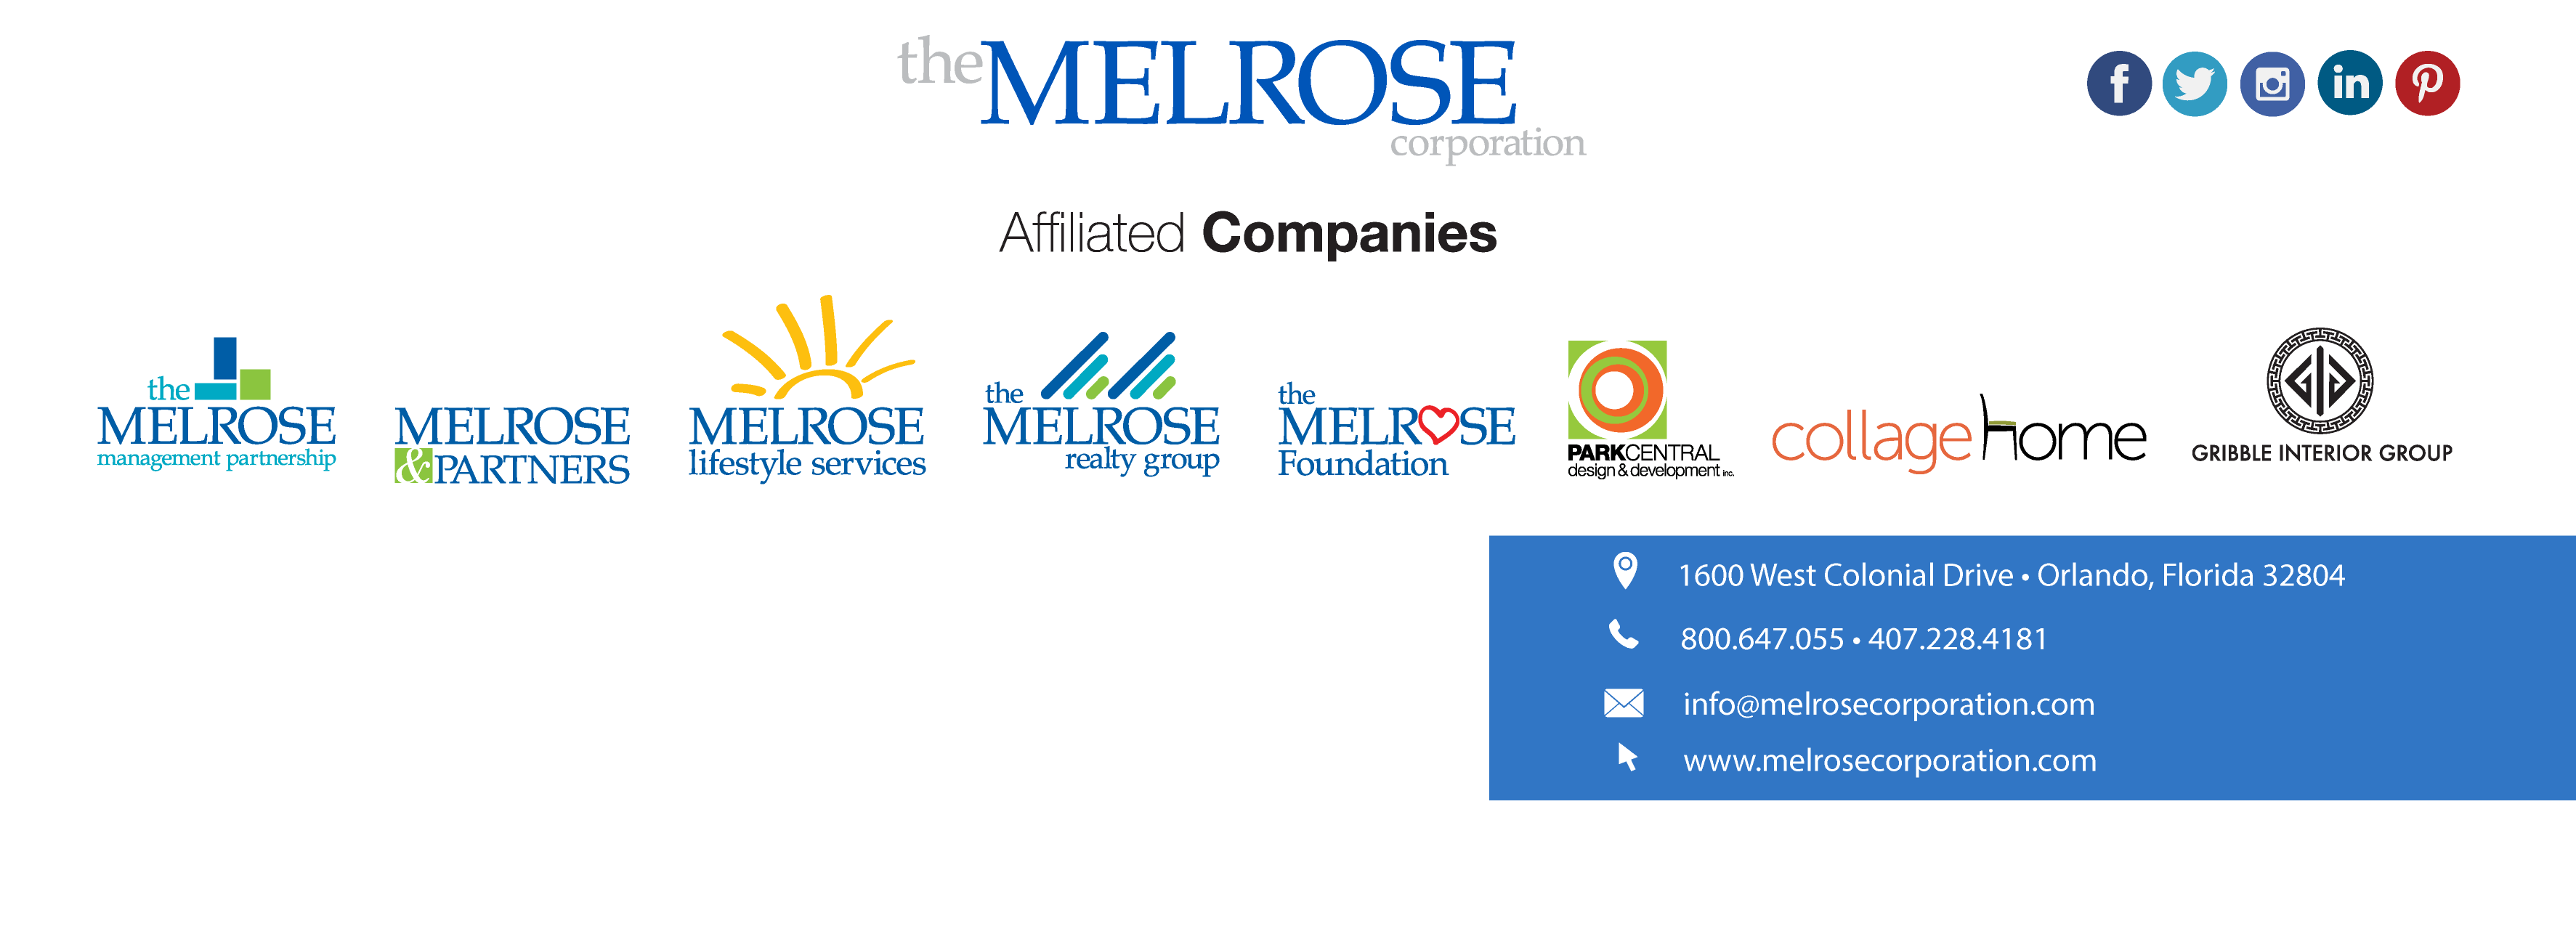 Melrose Foundation Cover